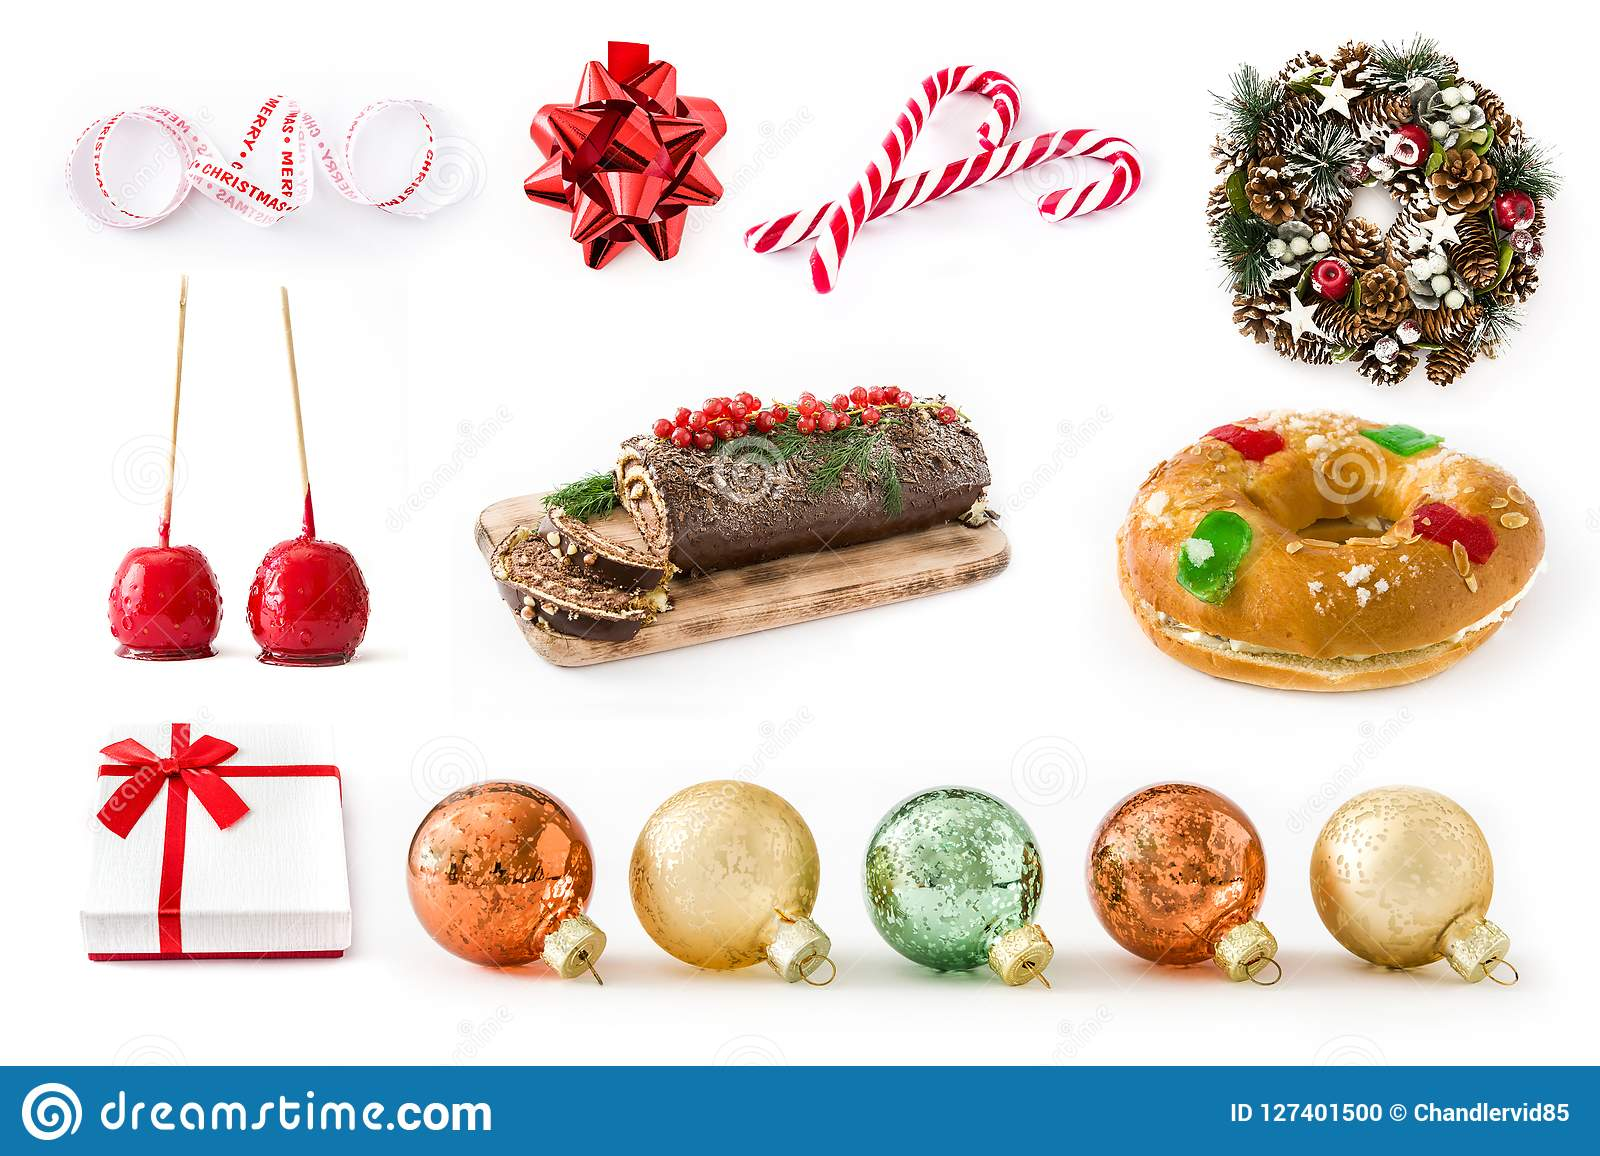 Christmas Collage Christmas Food And Christmas Ornaments Stock